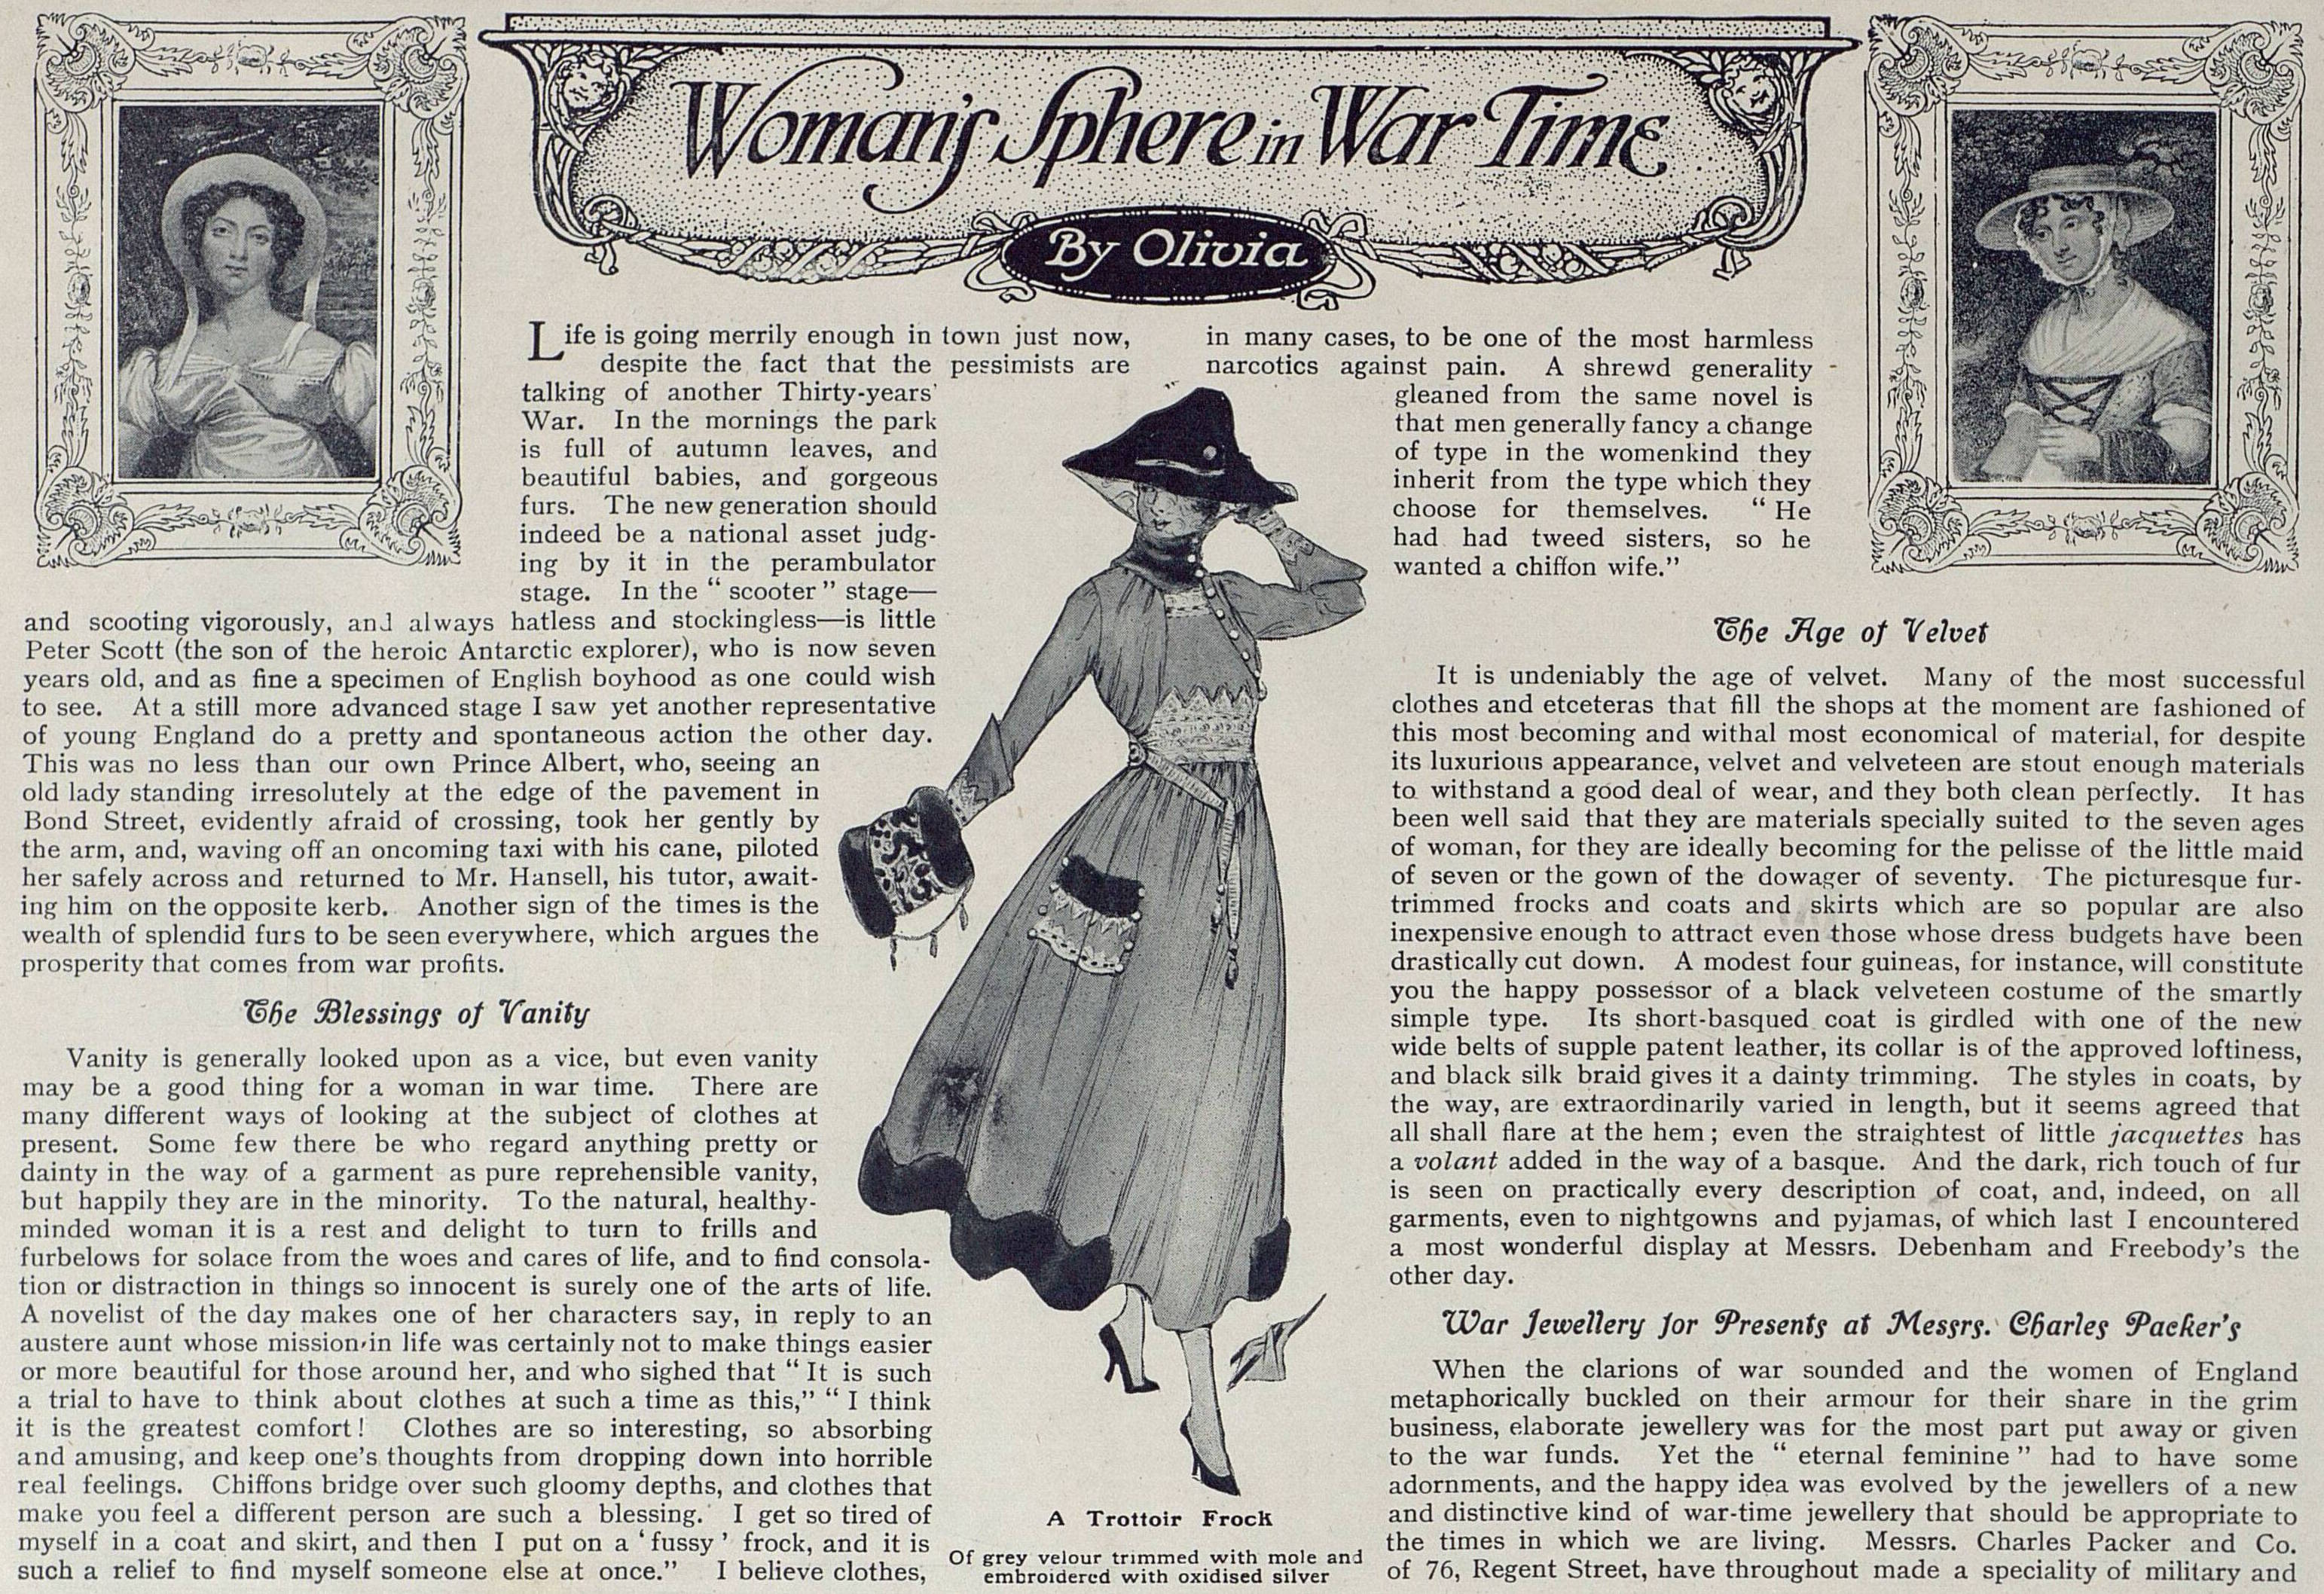 WomansSphereInWarTime_18Nov1916